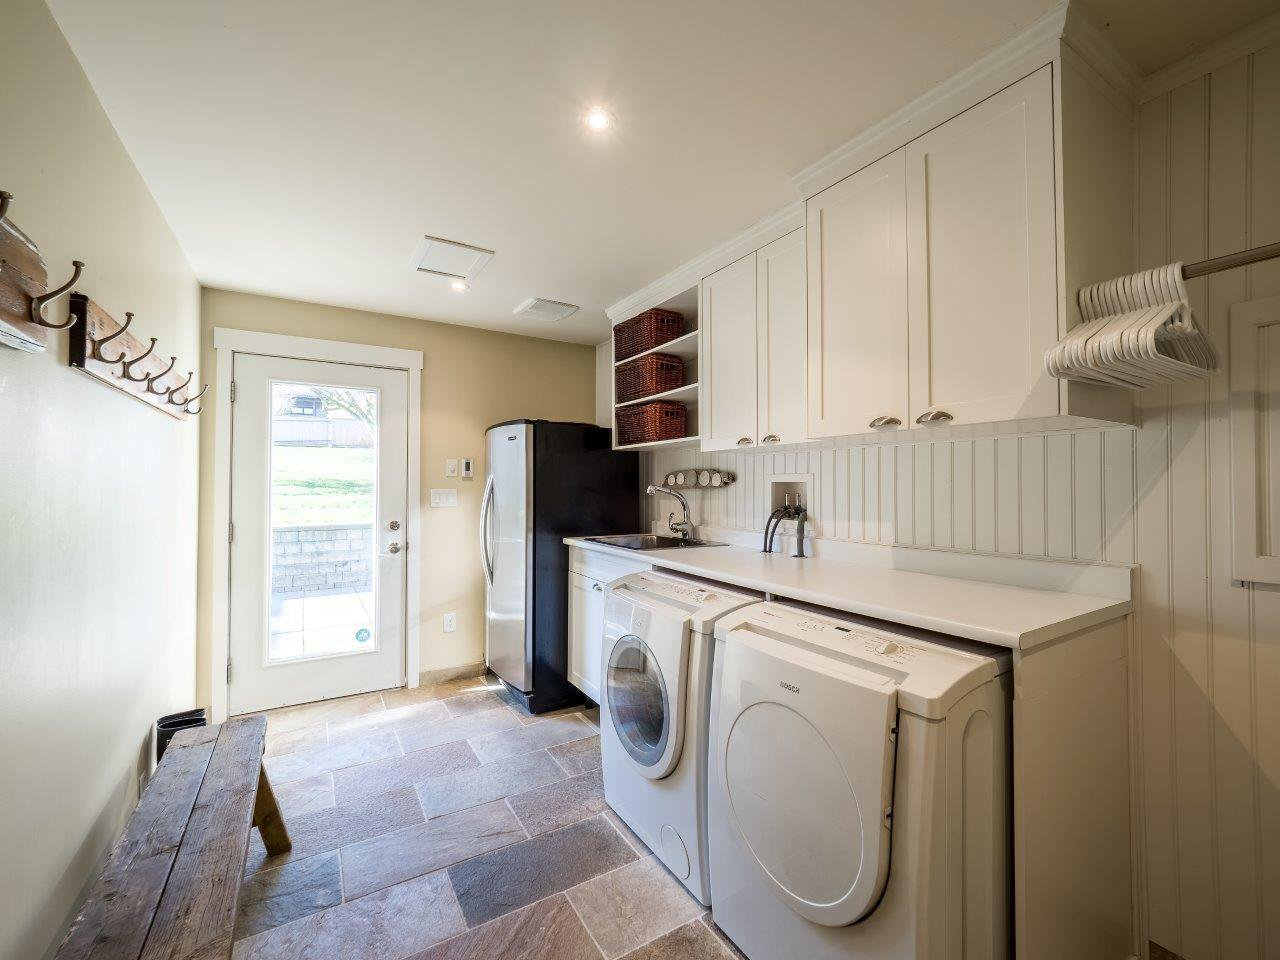 Photo 11: Photos: 345 BEACHVIEW DRIVE in North Vancouver: Dollarton House for sale : MLS®# R2035403